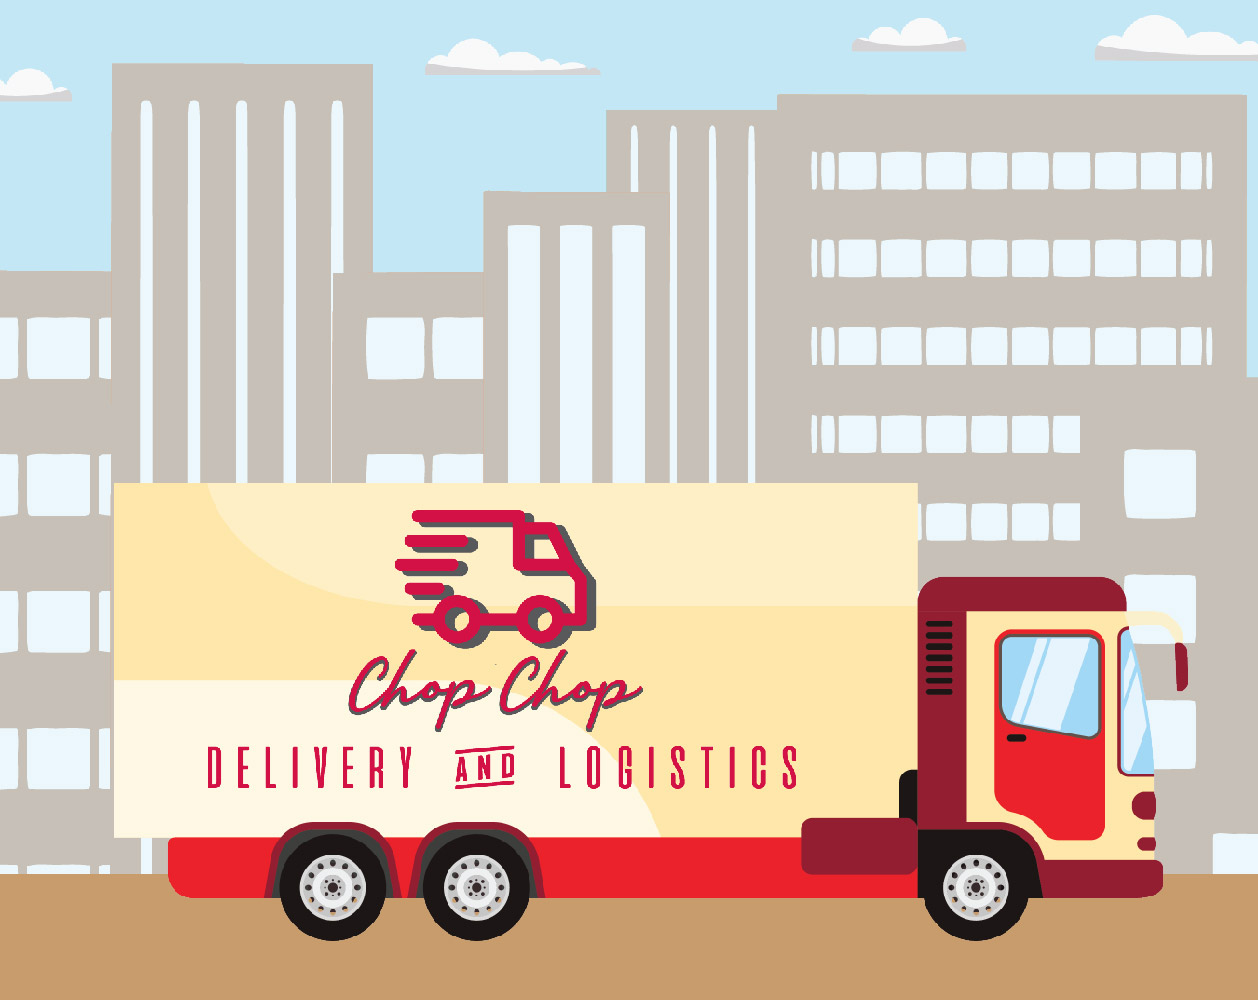 Chop Chop Delivey & Logistics Commercial